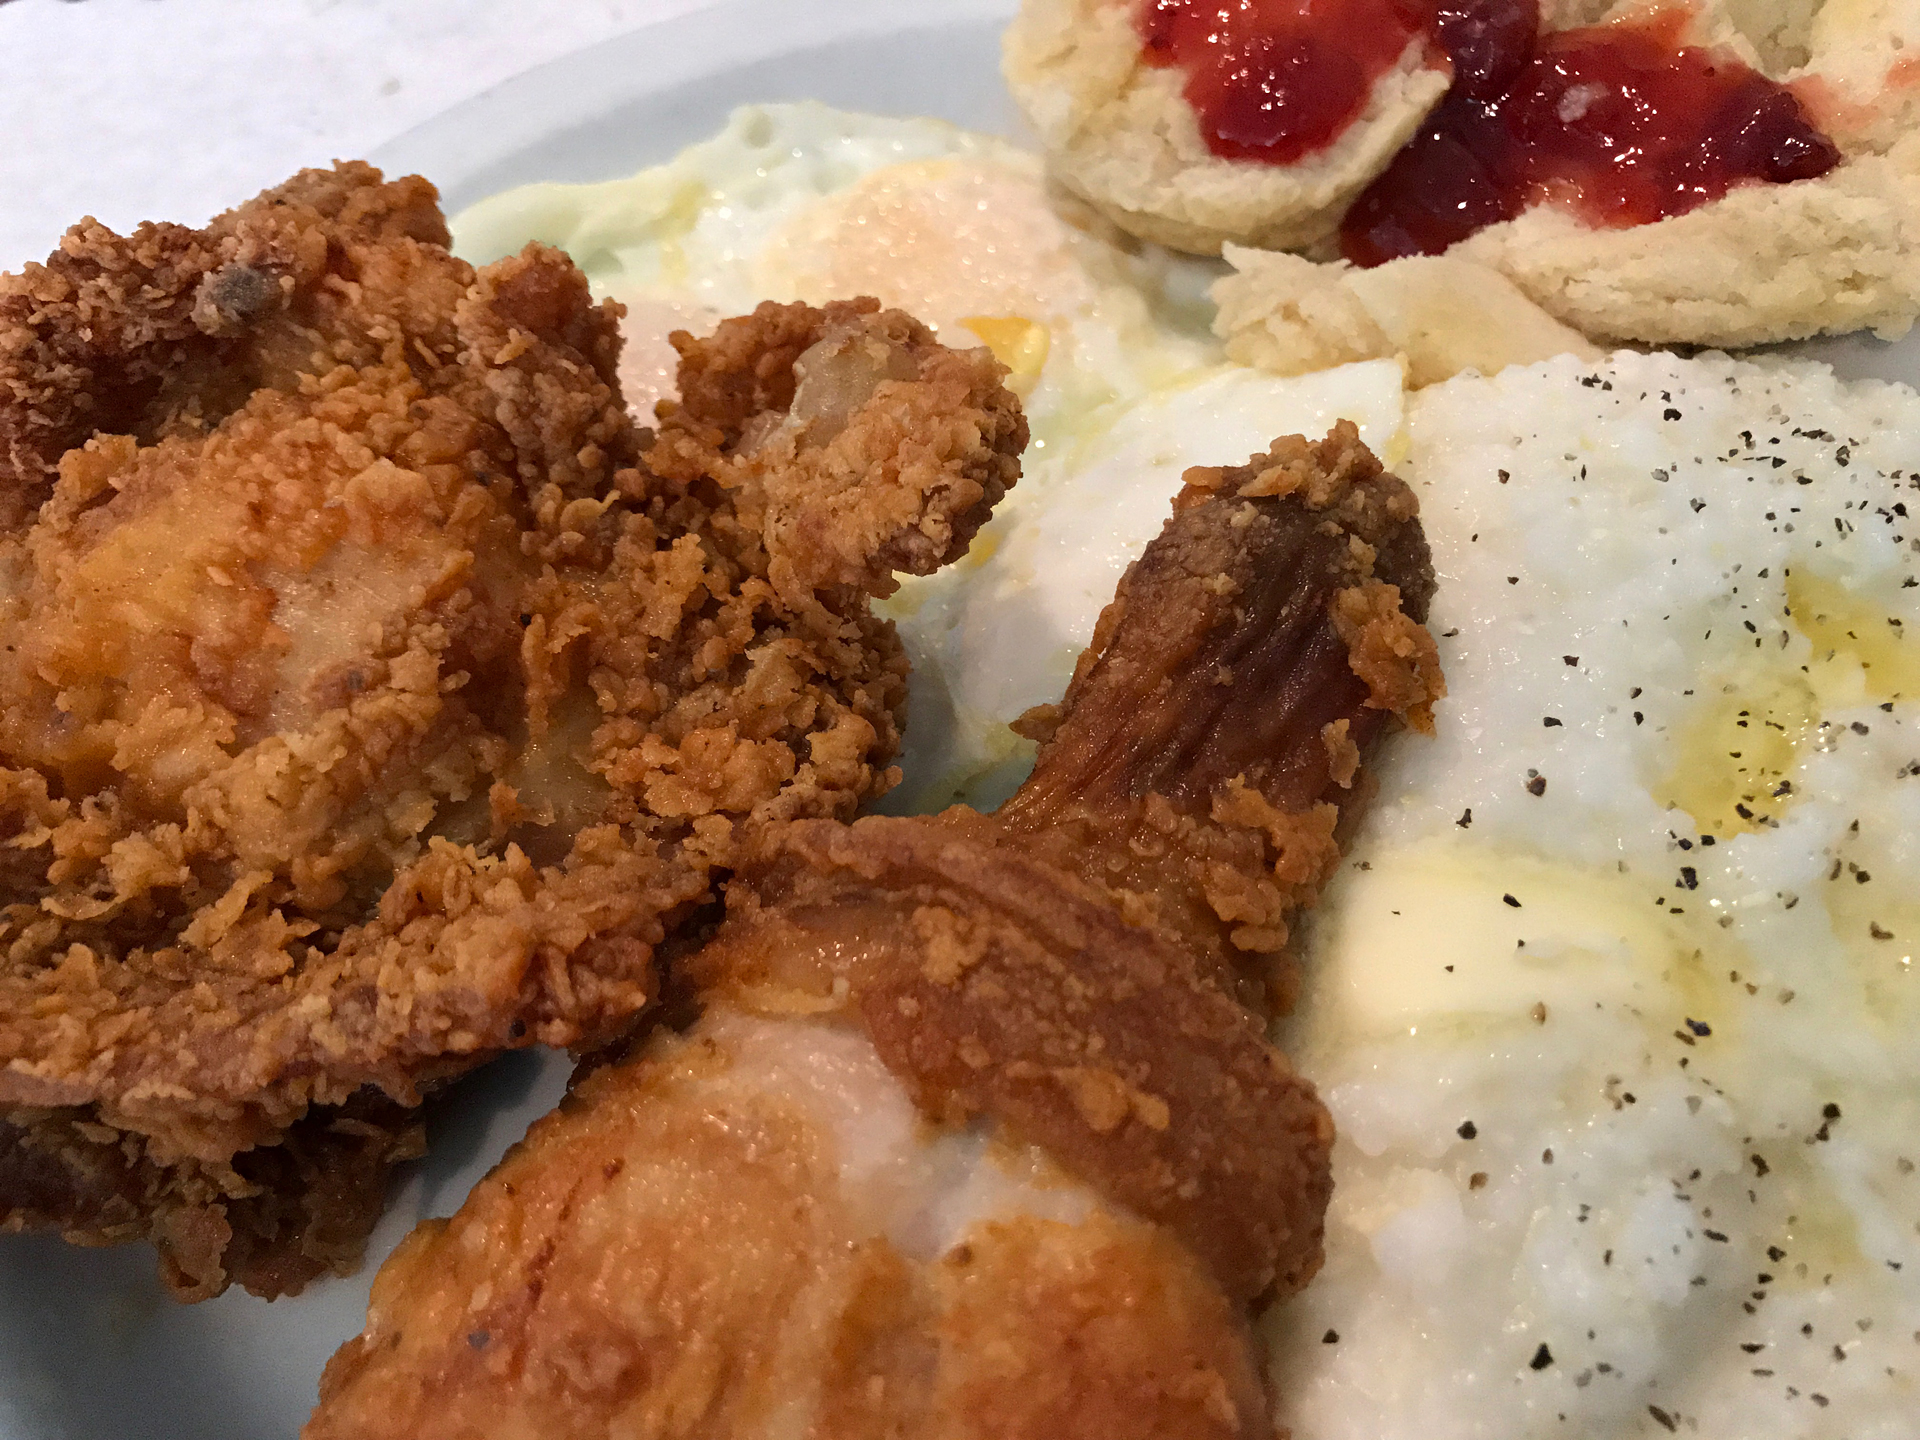 Fried chicken with grits and eggs at Oakland's Lois the Pie Queen.